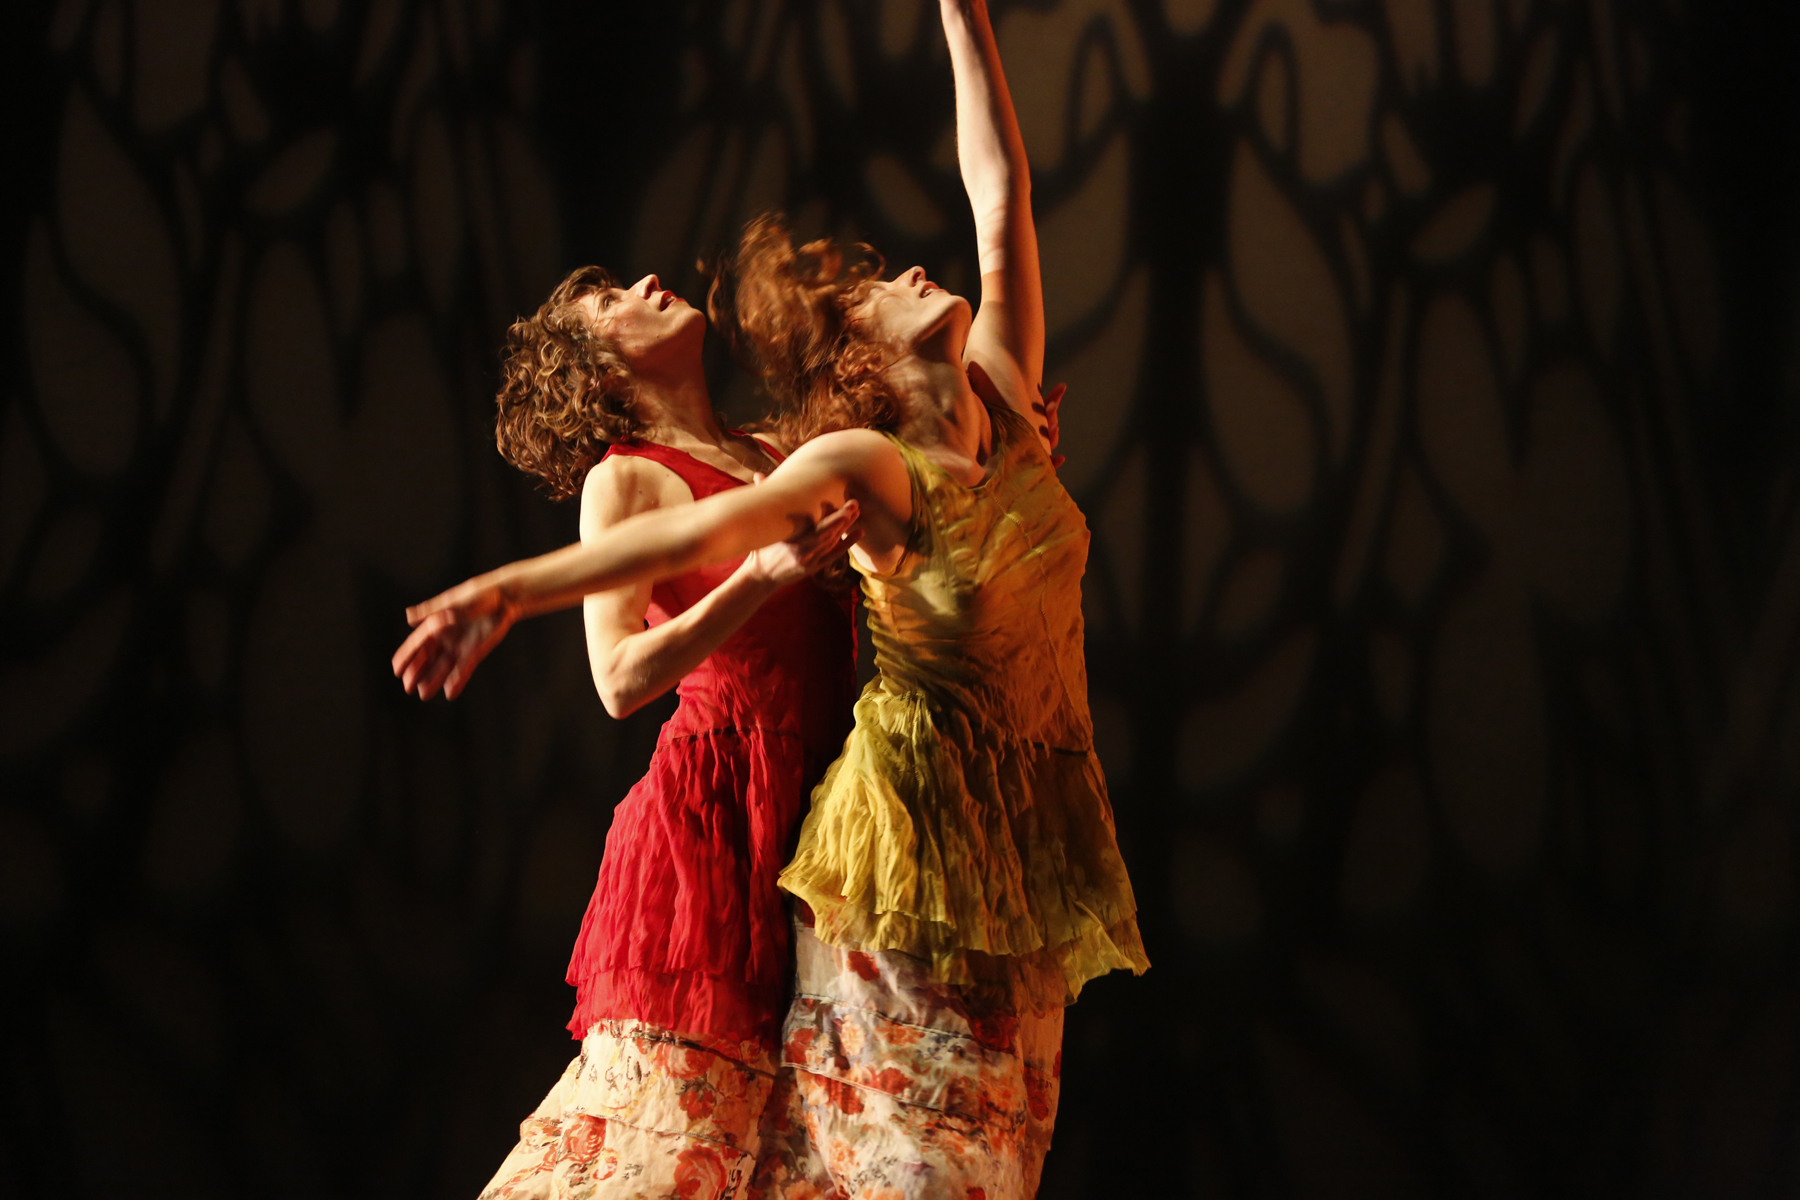 Stephanie Nugent and Suzanne Lappas in Katherinette by Selene Carter. Photo by Jeremy Hogan.